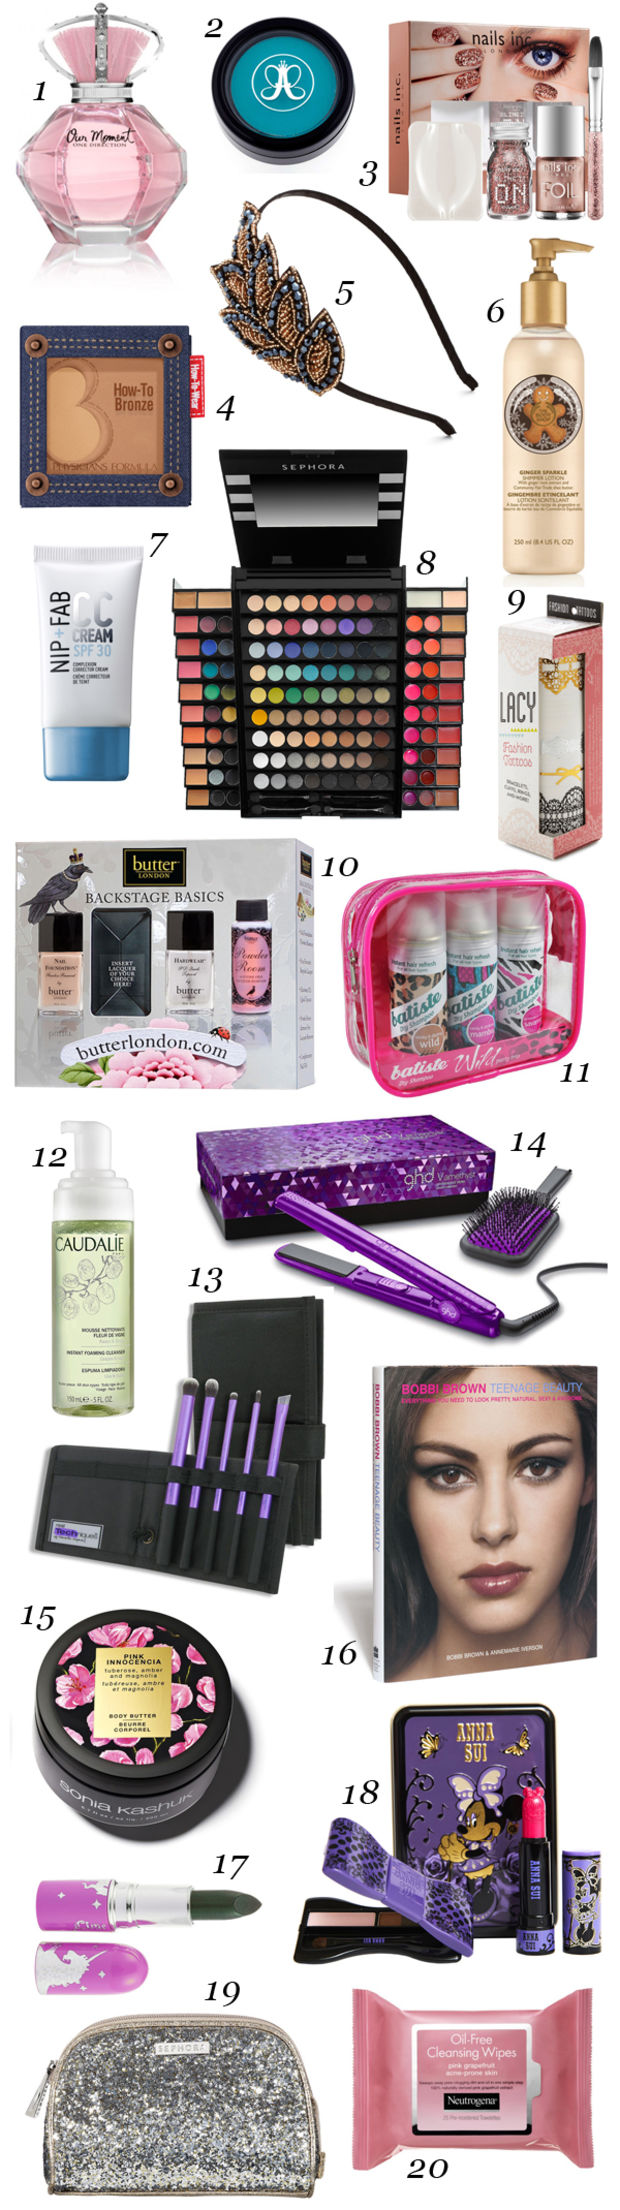 20 Beauty Gift Ideas For Teens And Tweens Beautyeditor